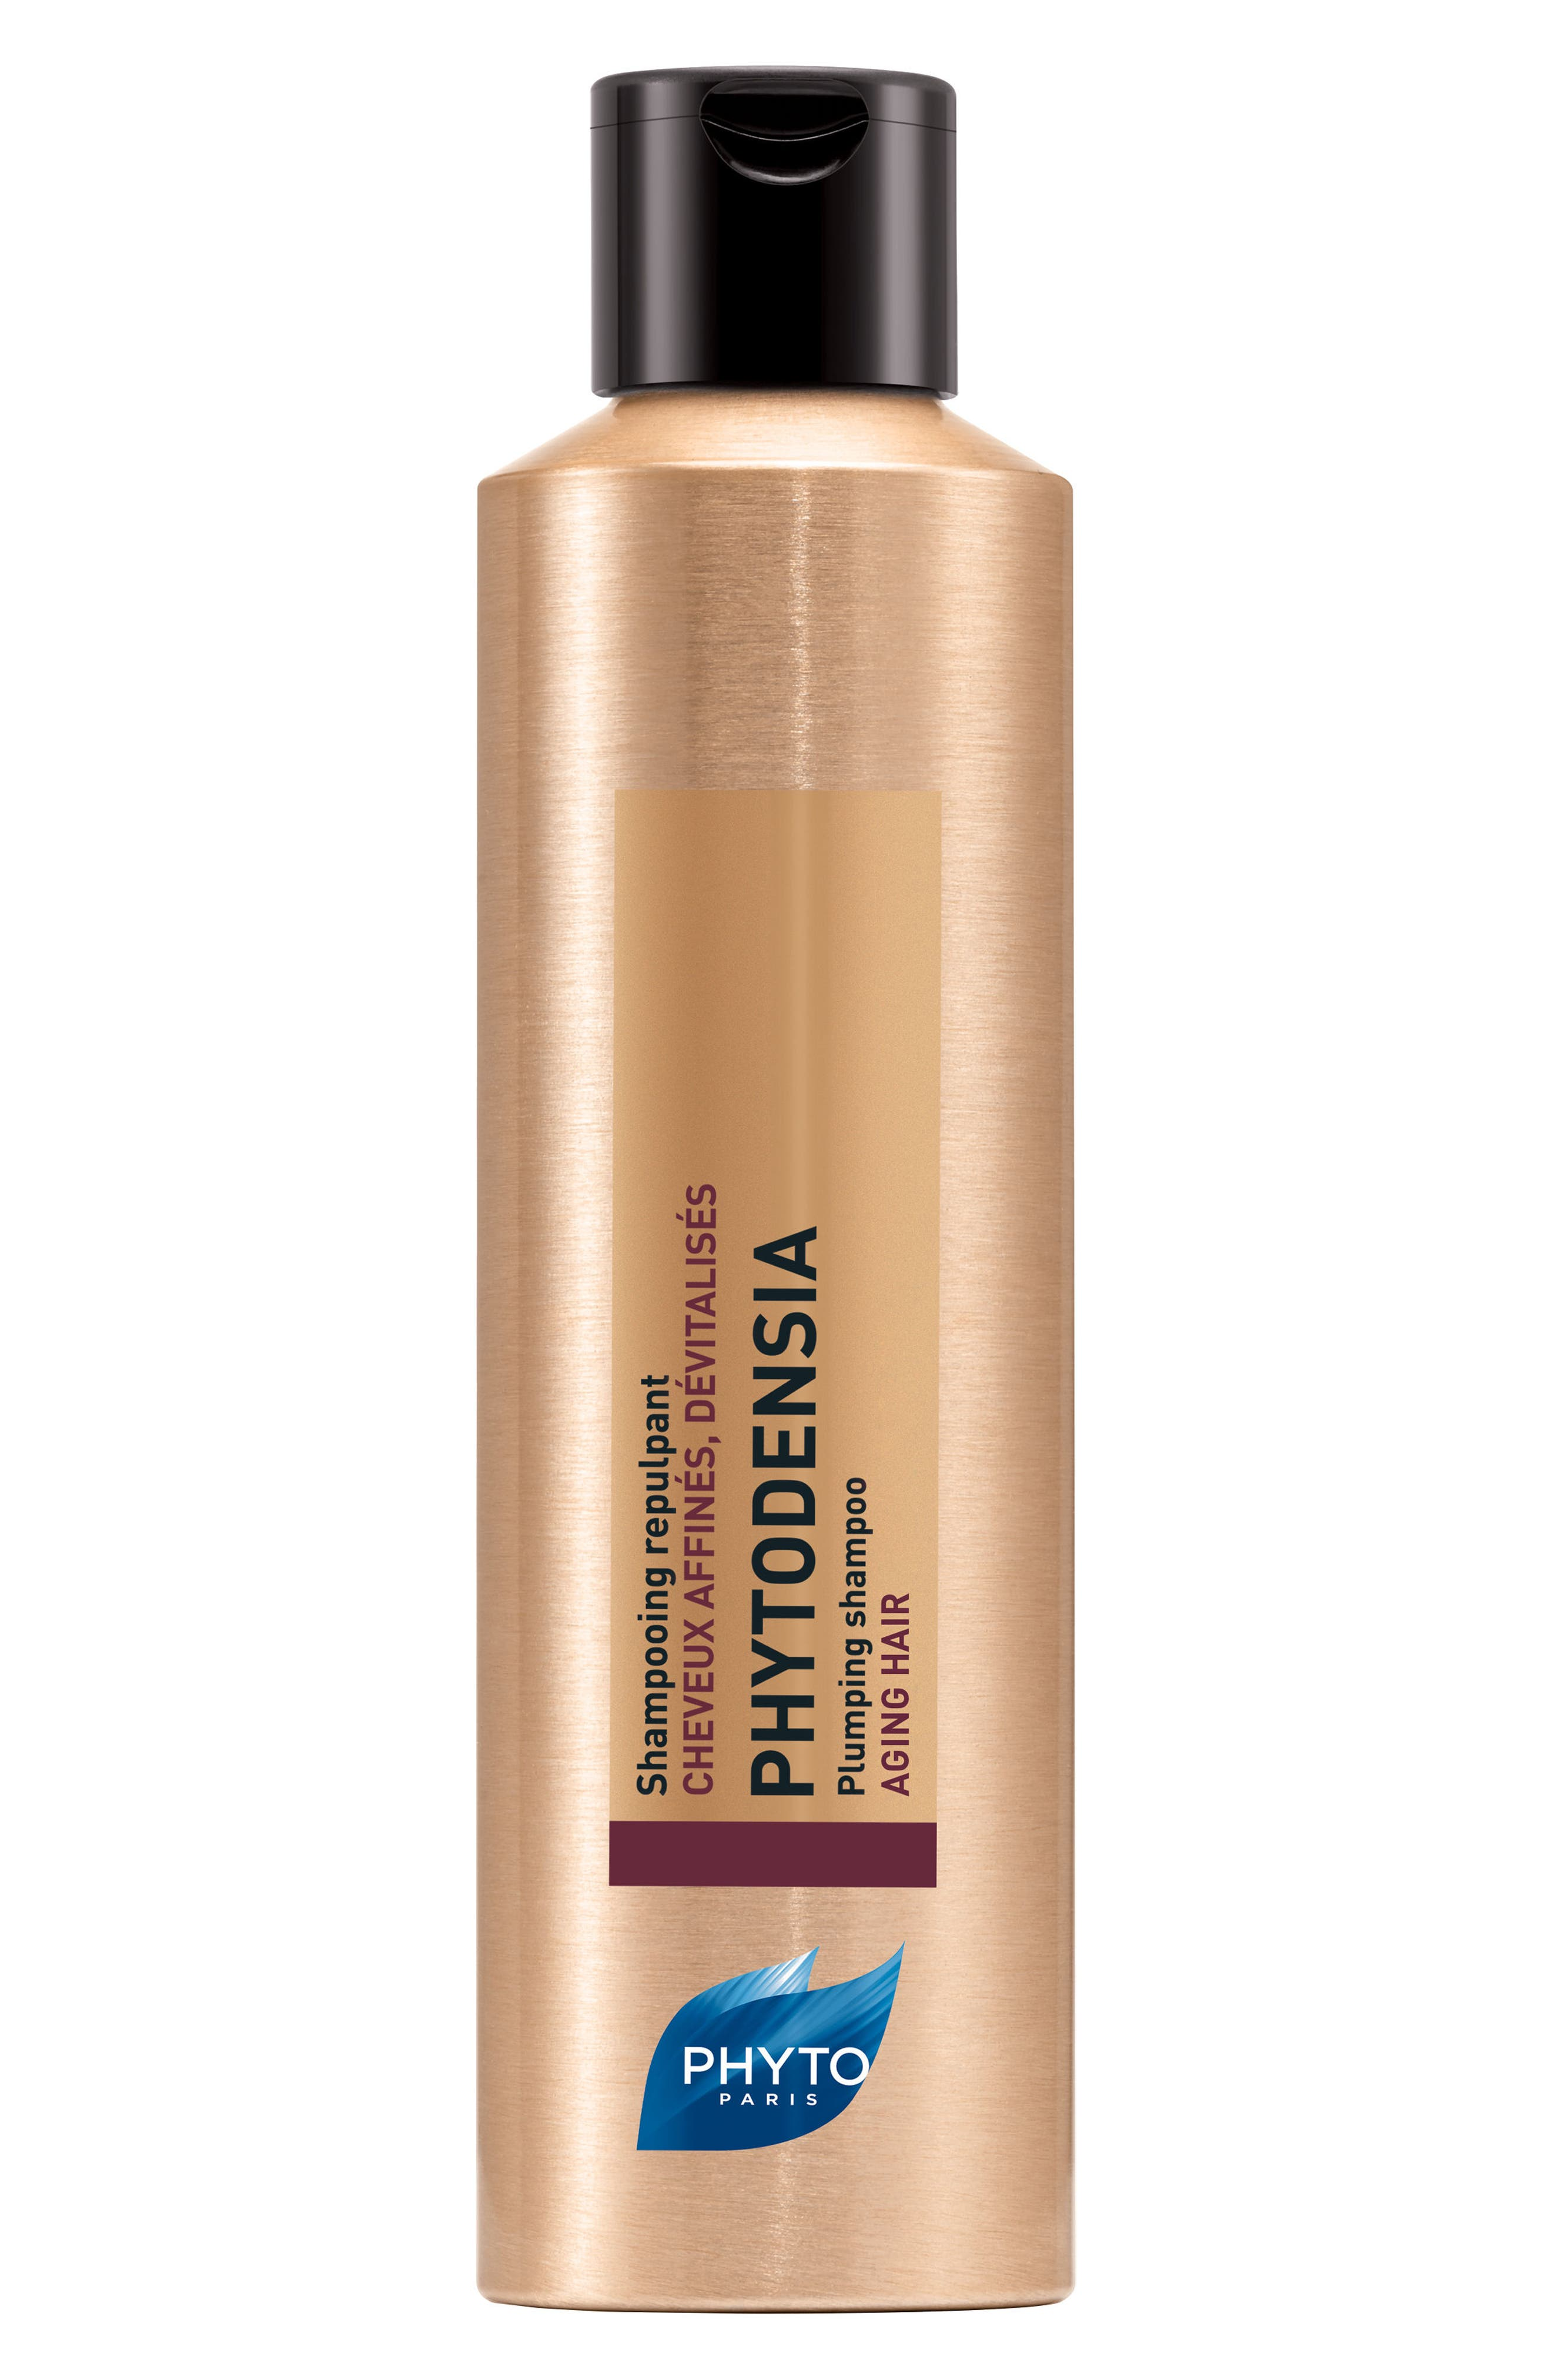 Phytodensia Plumping Shampoo,                         Main,                         color, No Color